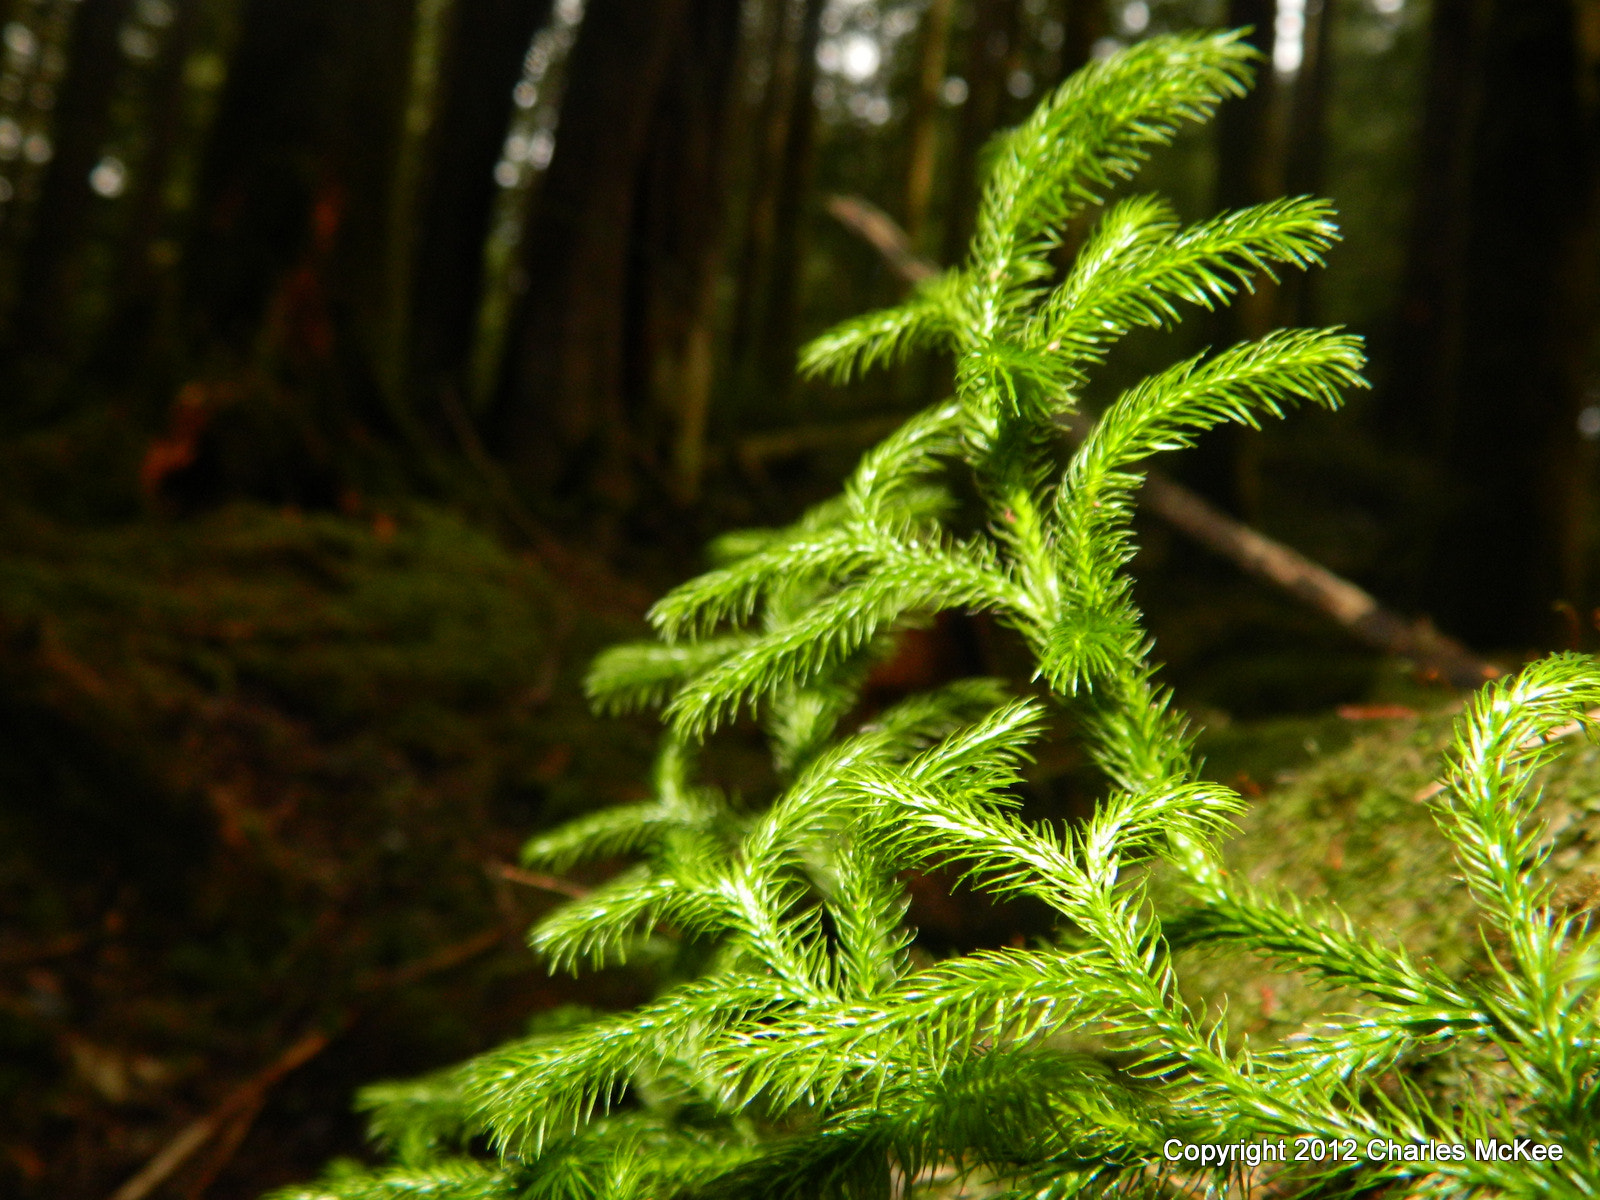 Photograph Club Moss by Charlie Mckee on 500px